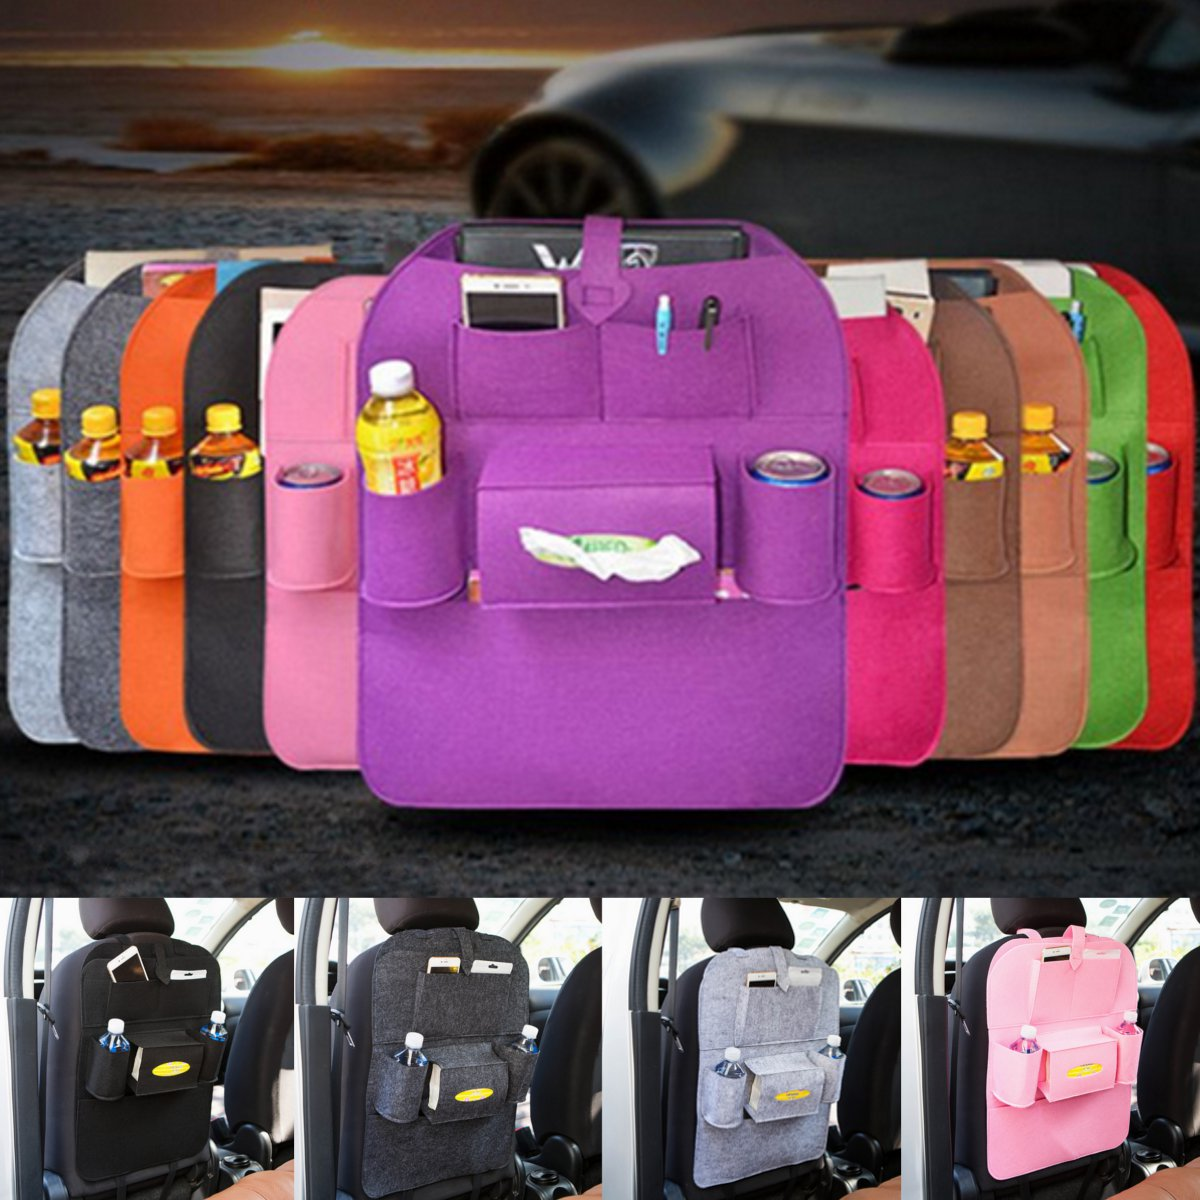 Car Storage Bag Universal Back Seat Organizer Box Felt Covers Backseat Holder Multi-Pockets Container Stowing TidyingCar Storage Bag Universal Back Seat Organizer Box Felt Covers Backseat Holder Multi-Pockets Container Stowing Tidying